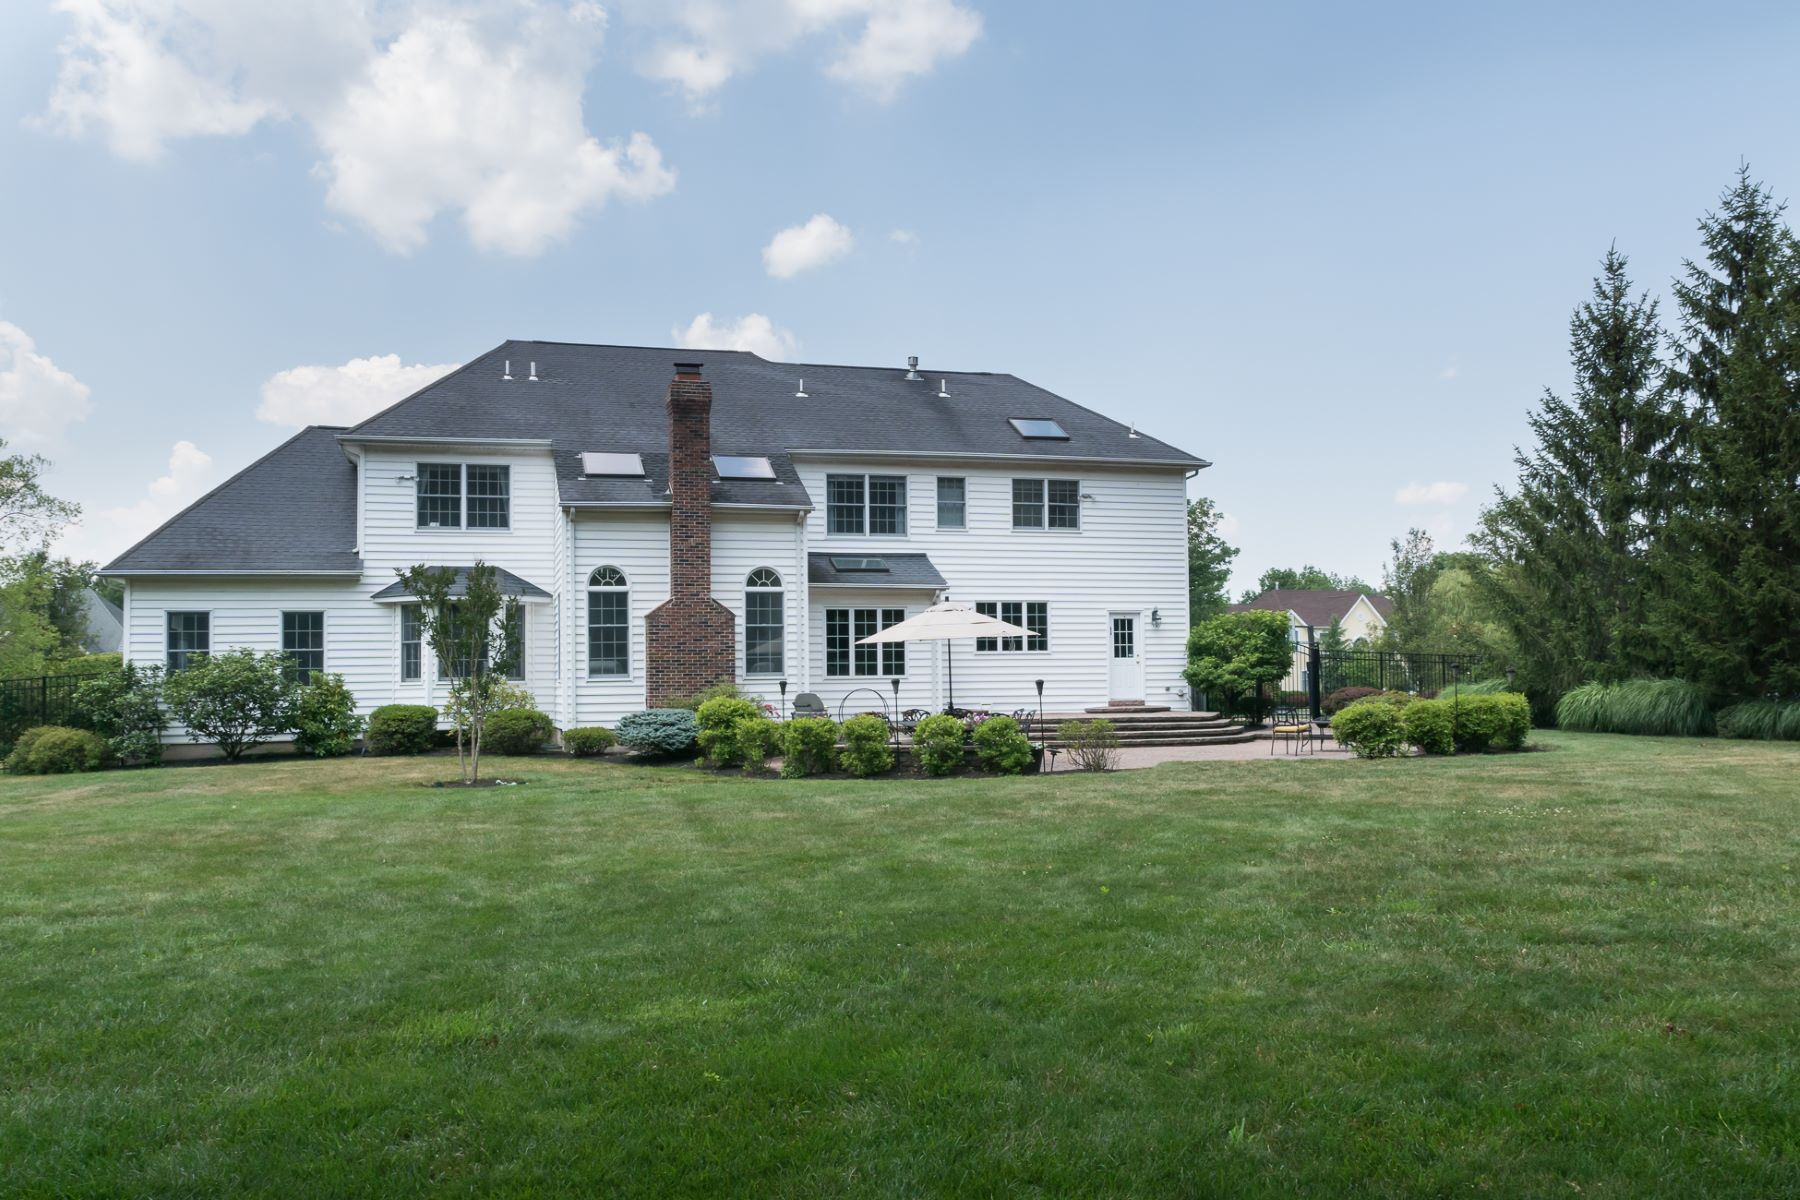 Additional photo for property listing at Hopewell Hunt Home Harmonizes Luxury and Warmth 12 Bailey Drive, Princeton, New Jersey 08540 United States